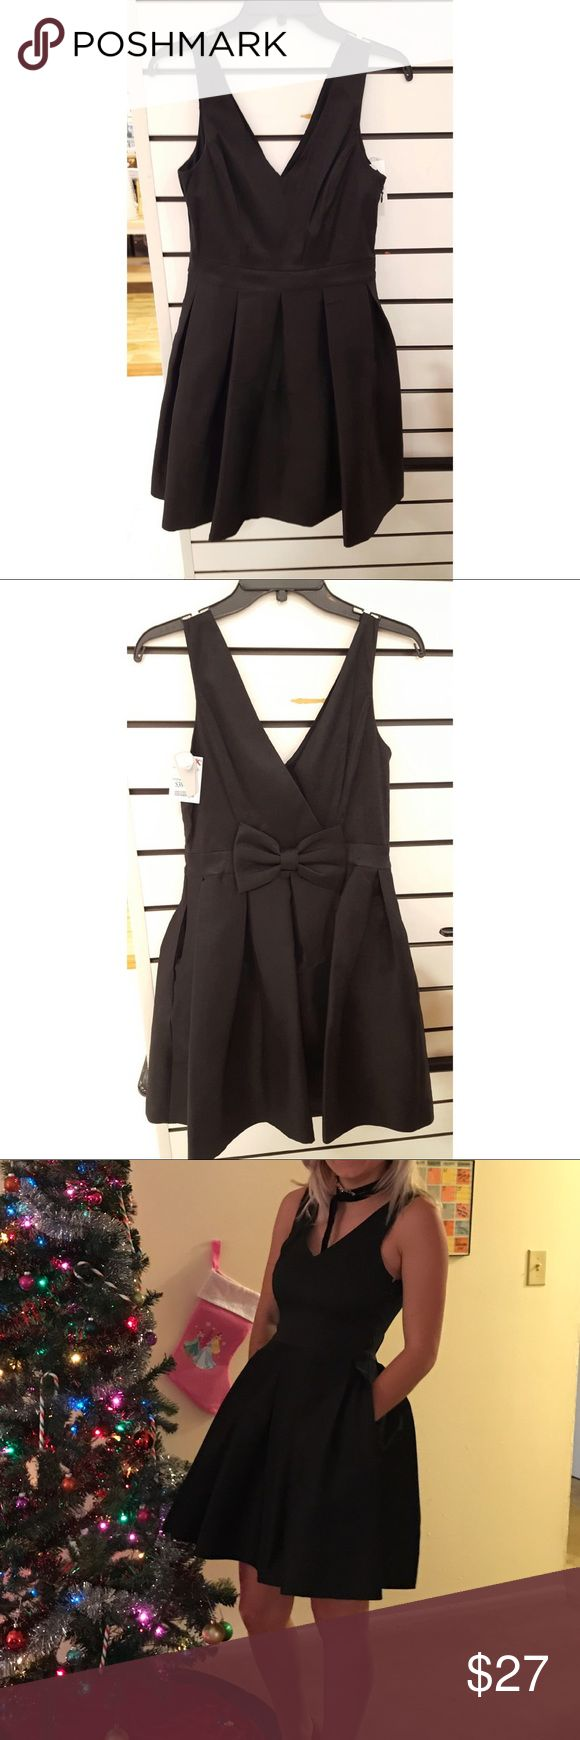 Black Bow Back Dress Black bow back dress worn once for a sorority formal! perfect condition, great for sorority formal or holiday parties. Even has pockets! Dresses Mini